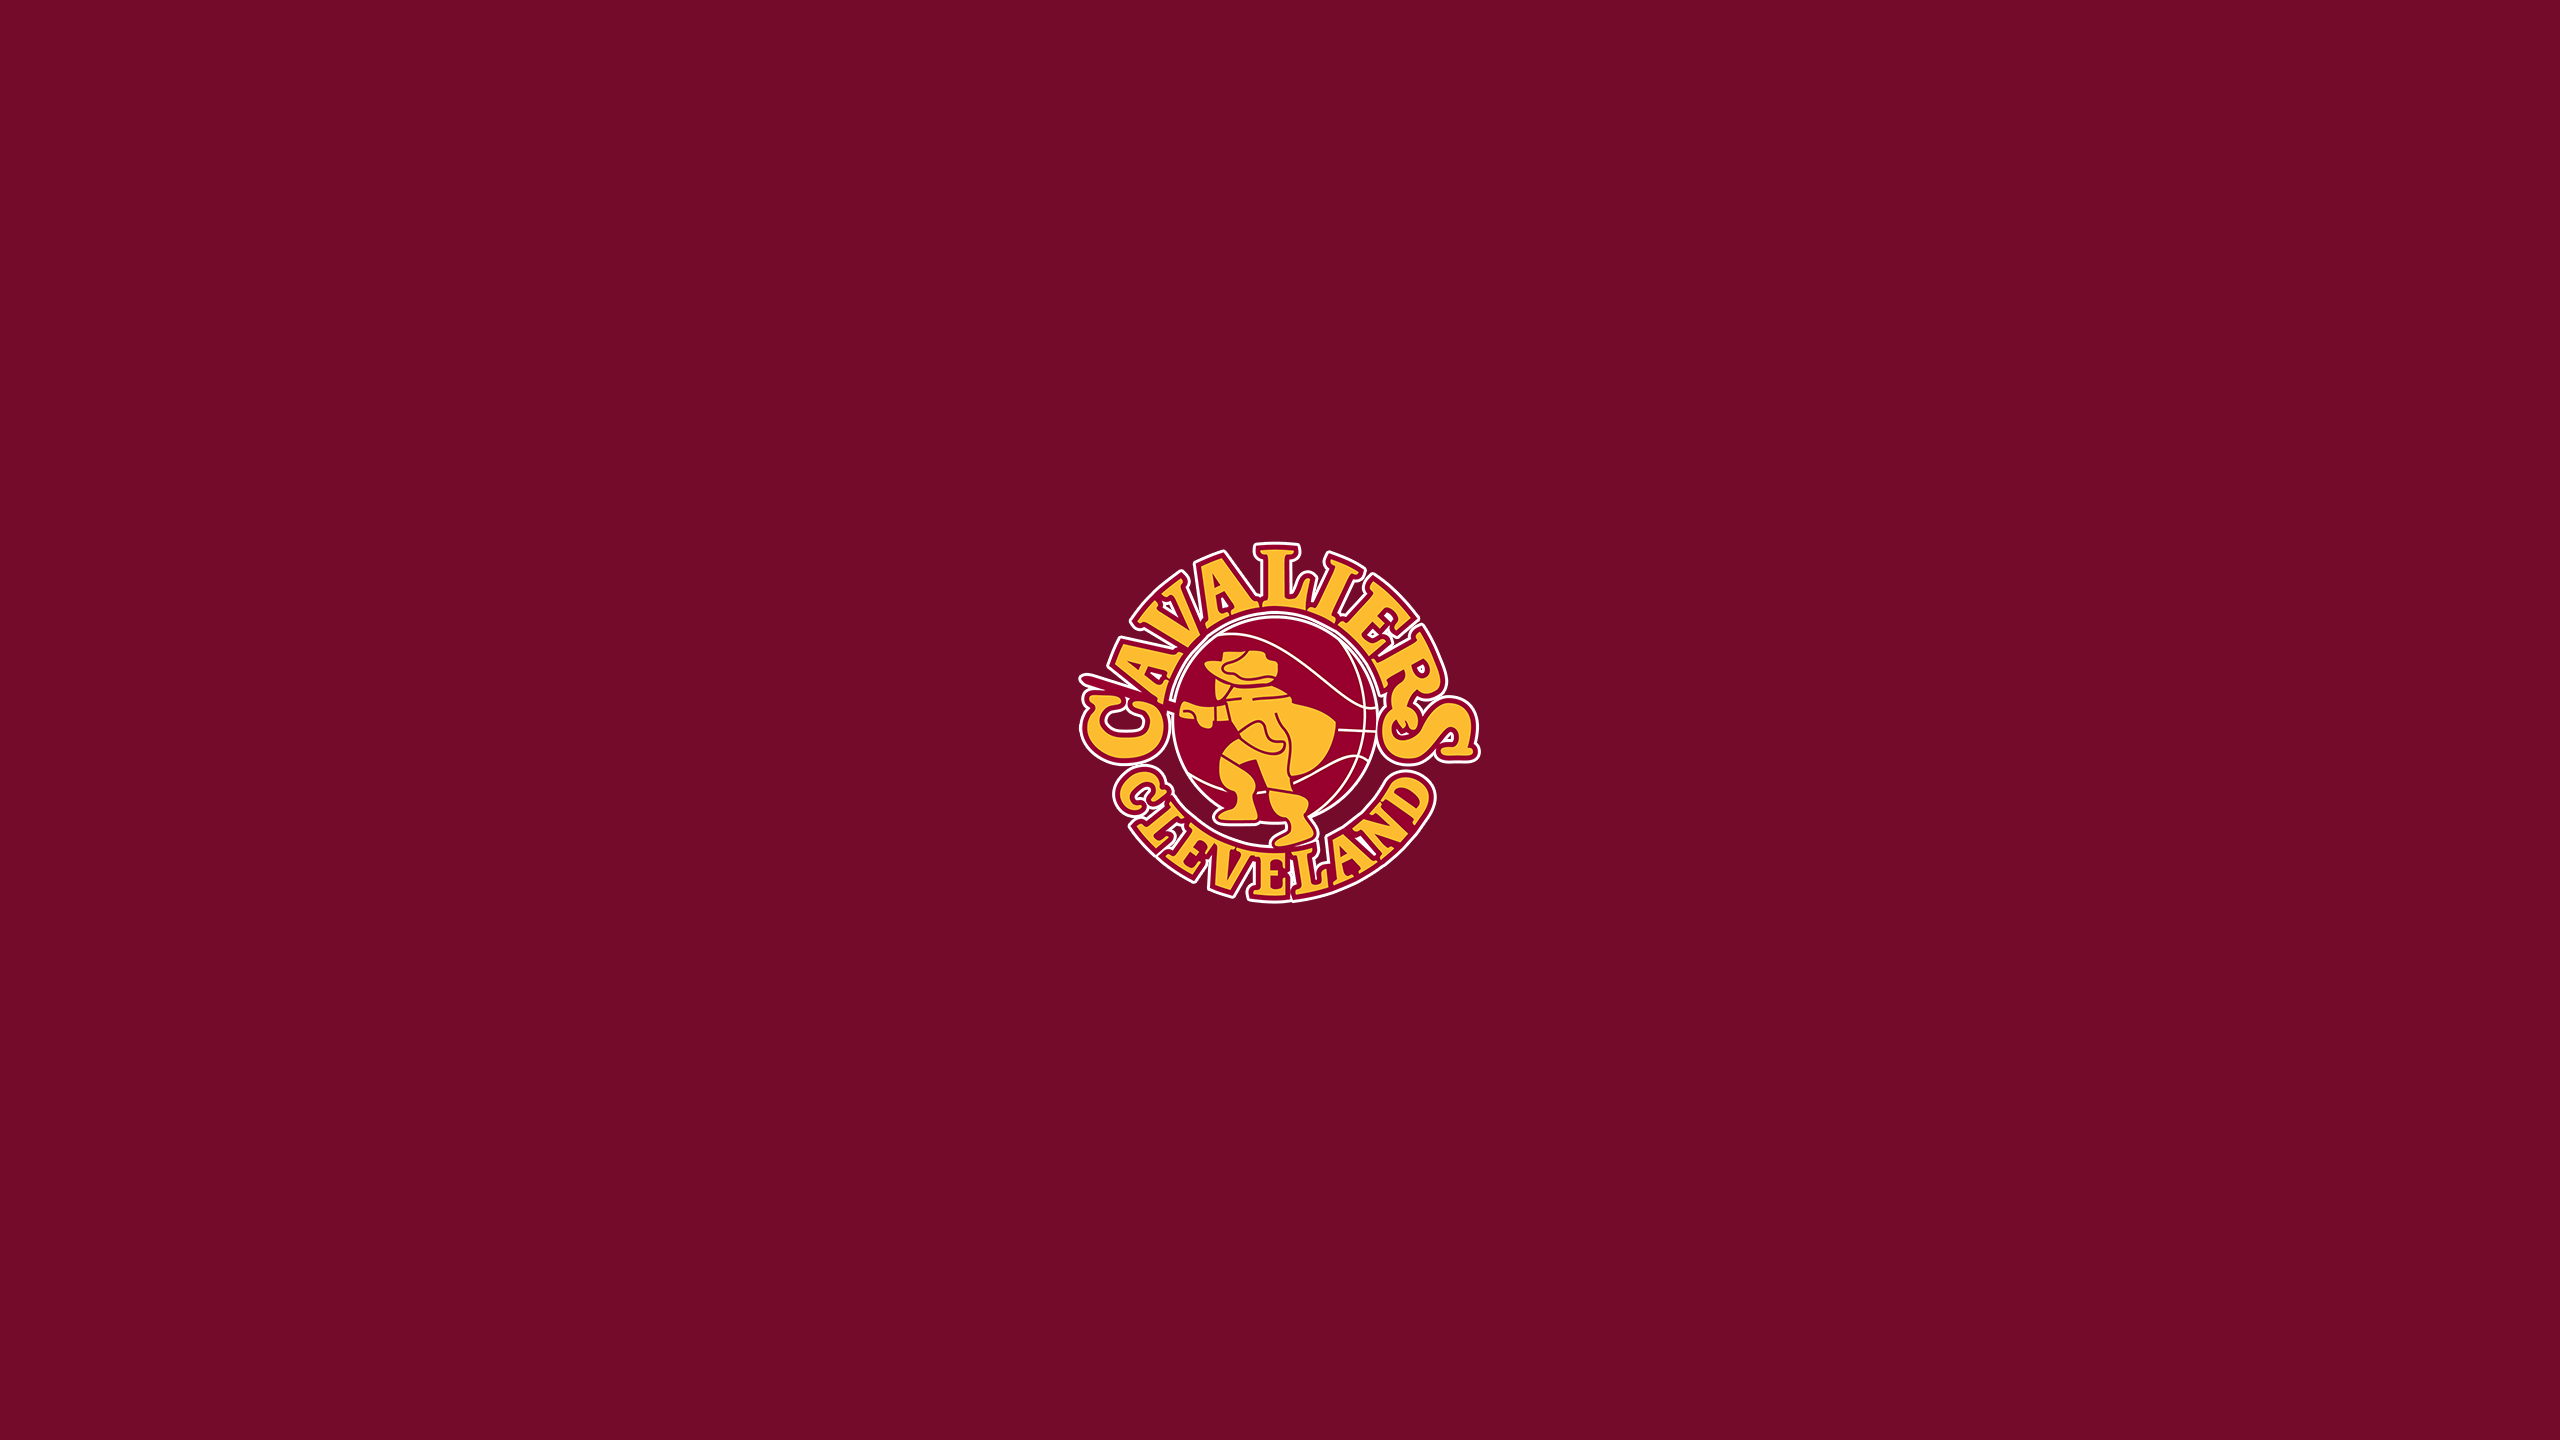 Cleveland Cavaliers (Old School)